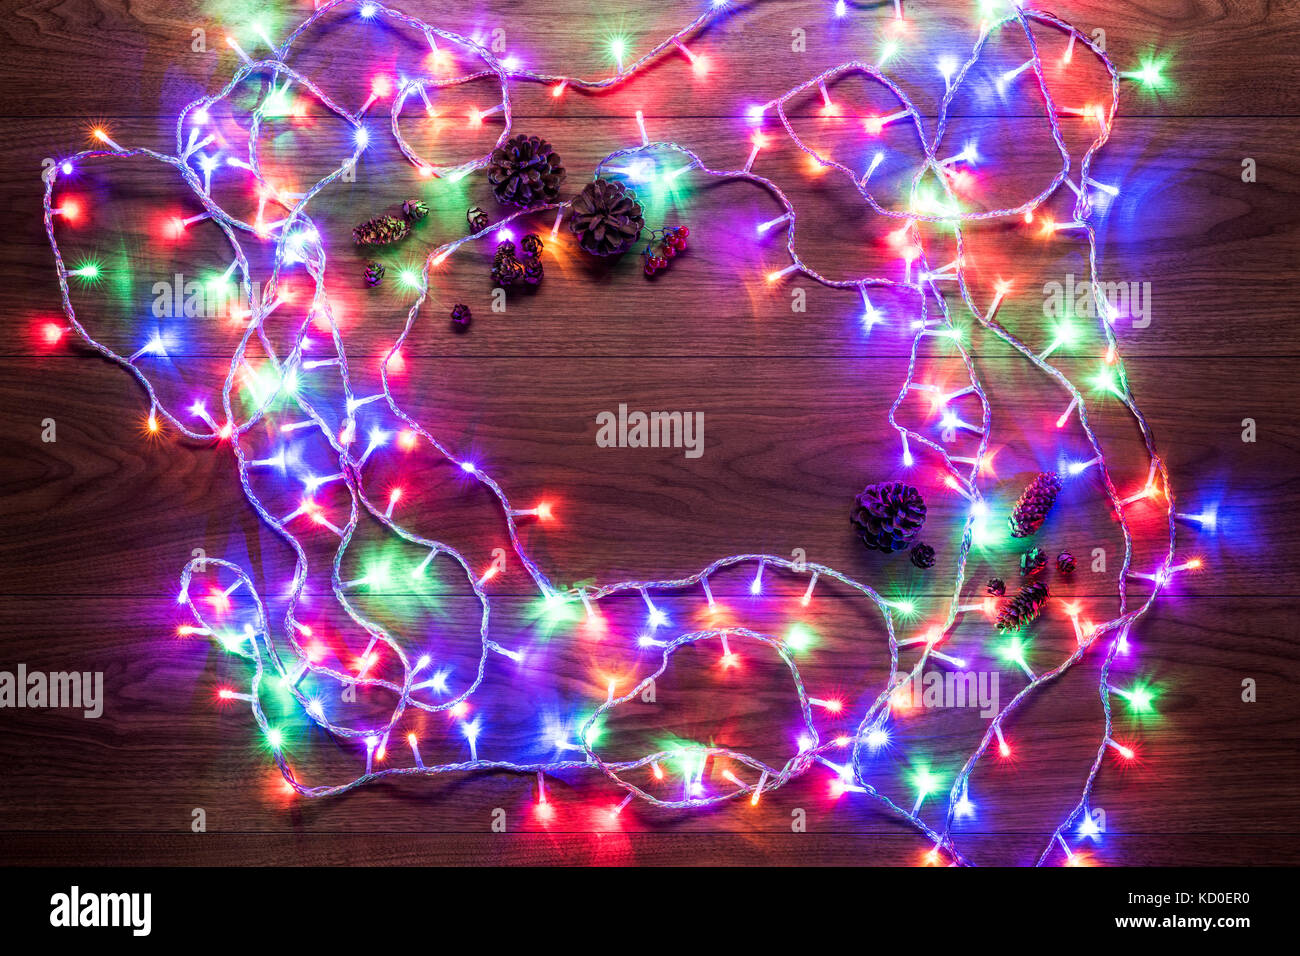 christmas theme background, xmas lights on wooden table with copy